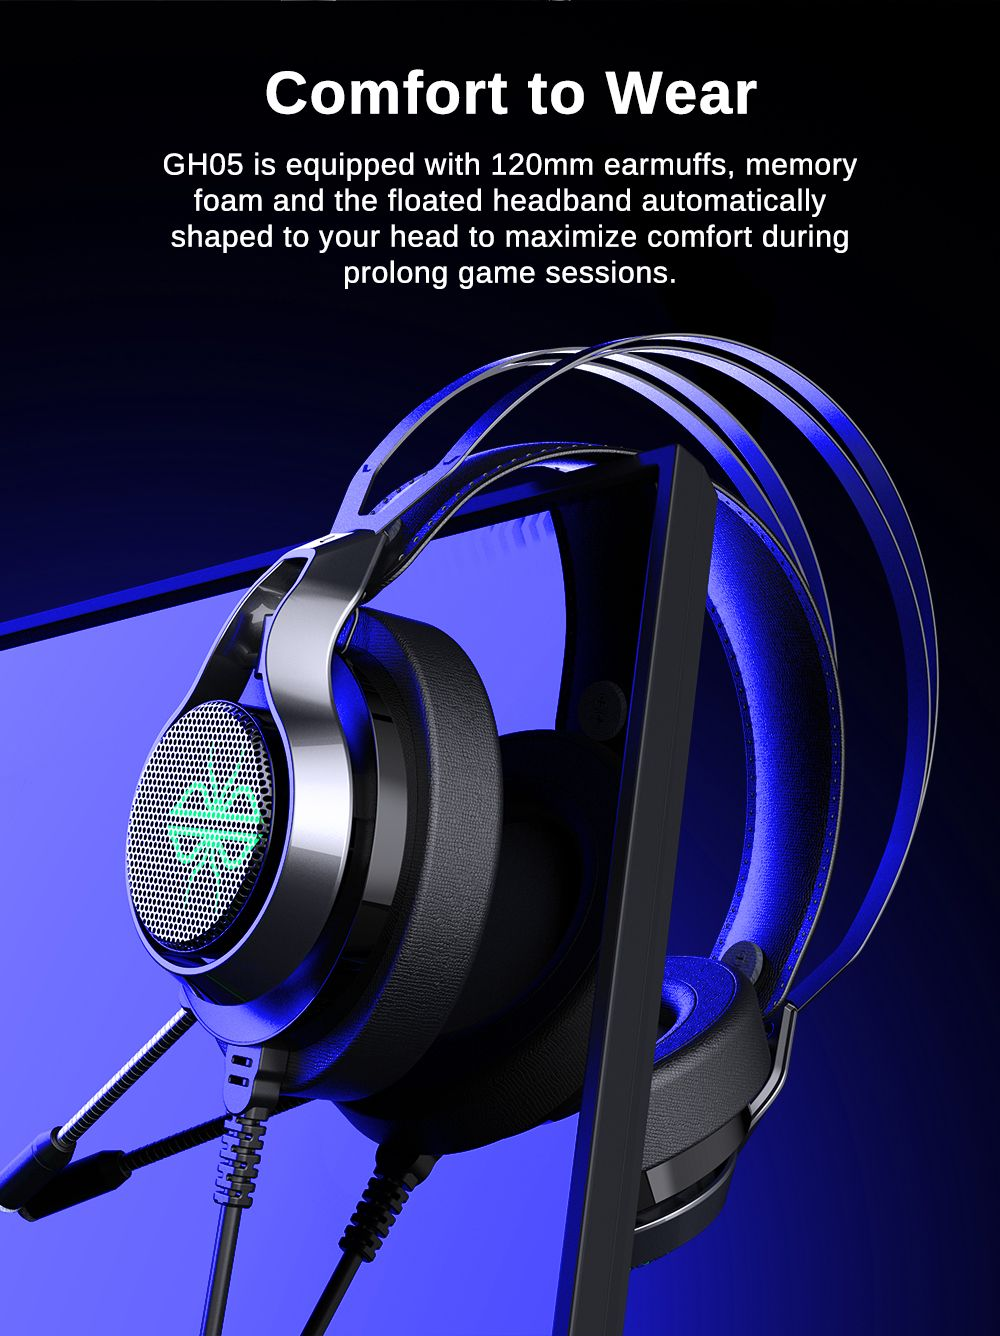 Dacom Gh05 Wired Over Ear Gaming Headphone (1)